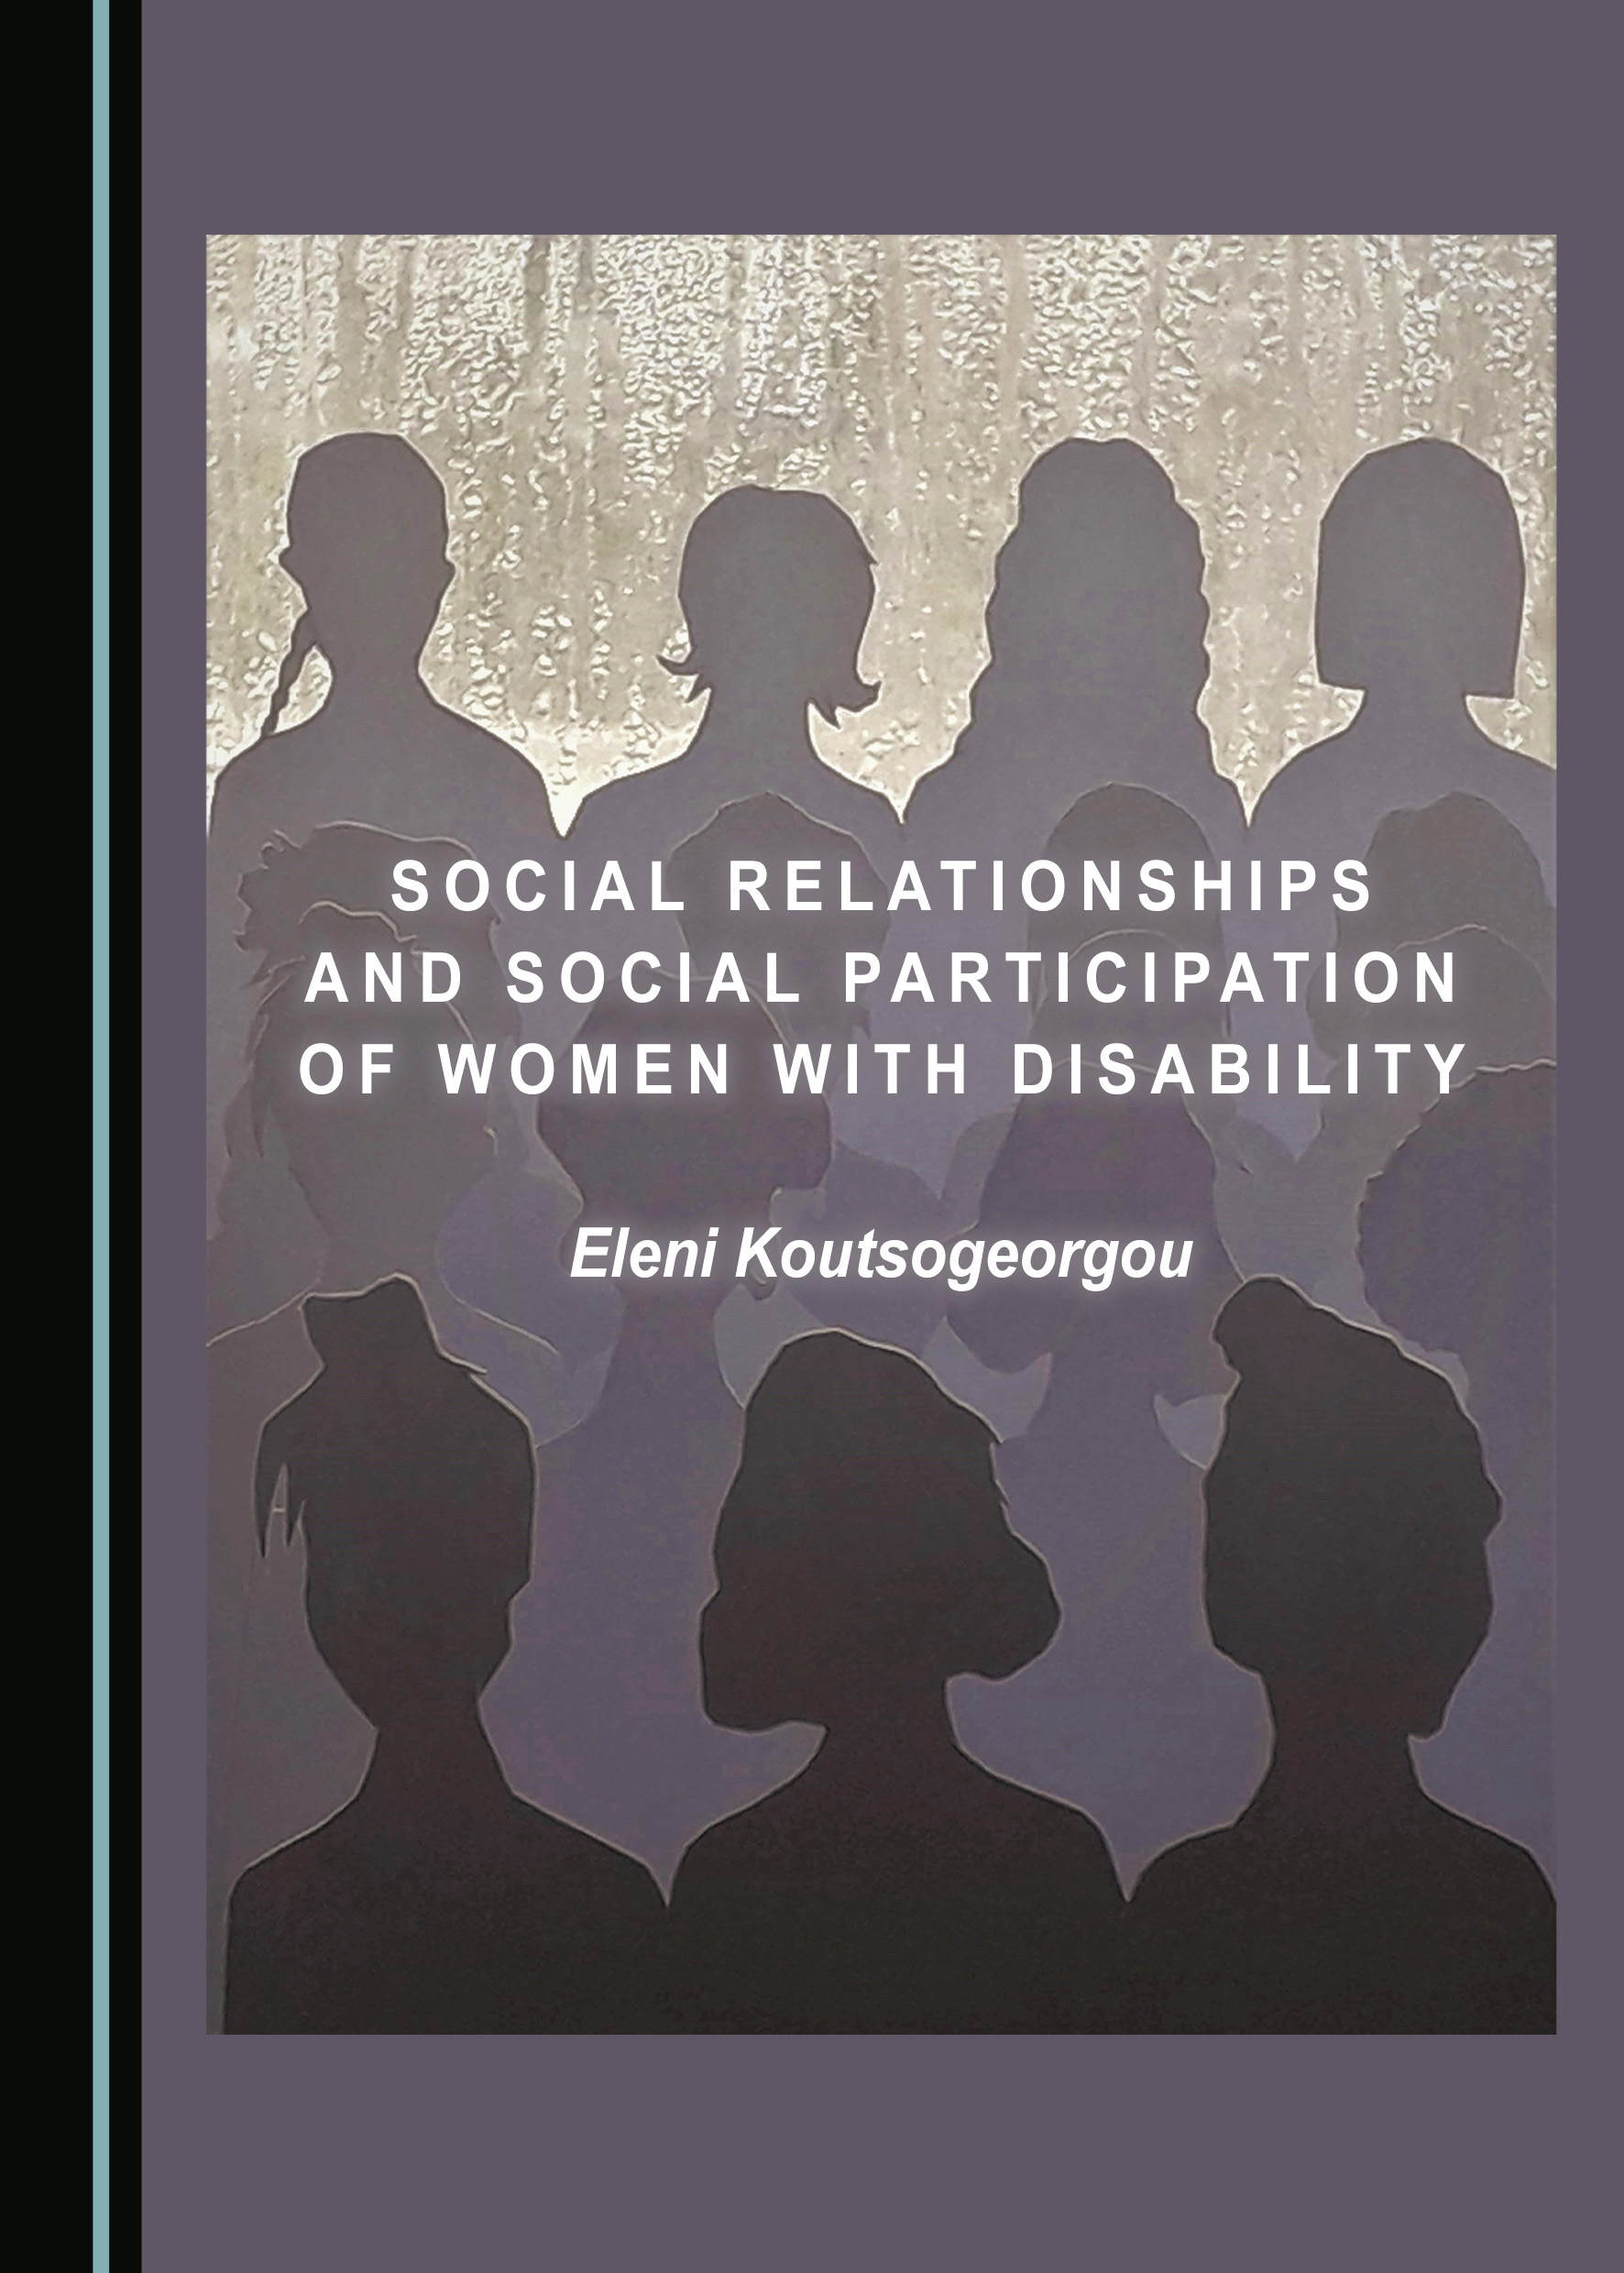 Social Relationships and Social Participation of Women with Disability